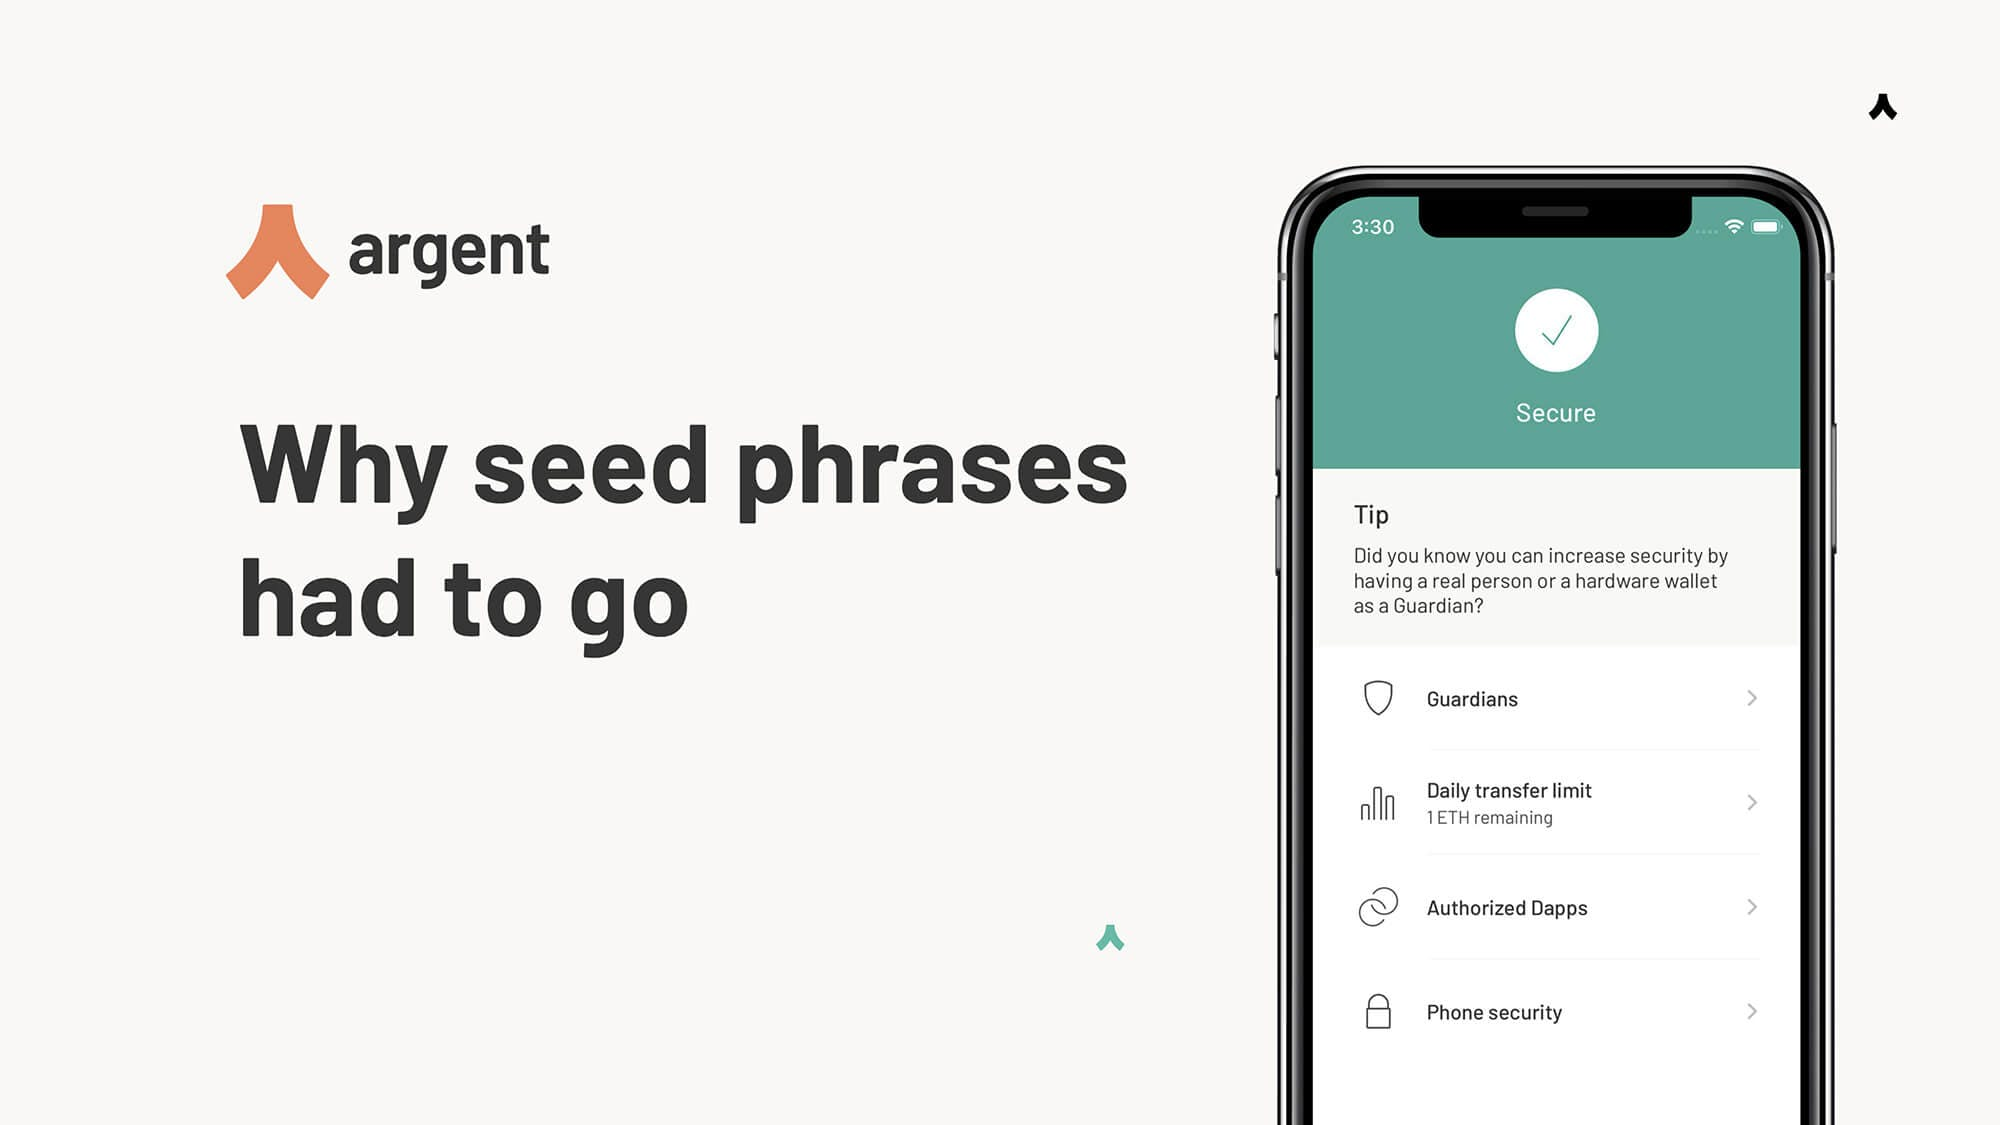 Argent Ethereum wallet is decentralised, yet doesn't use seed phrases.